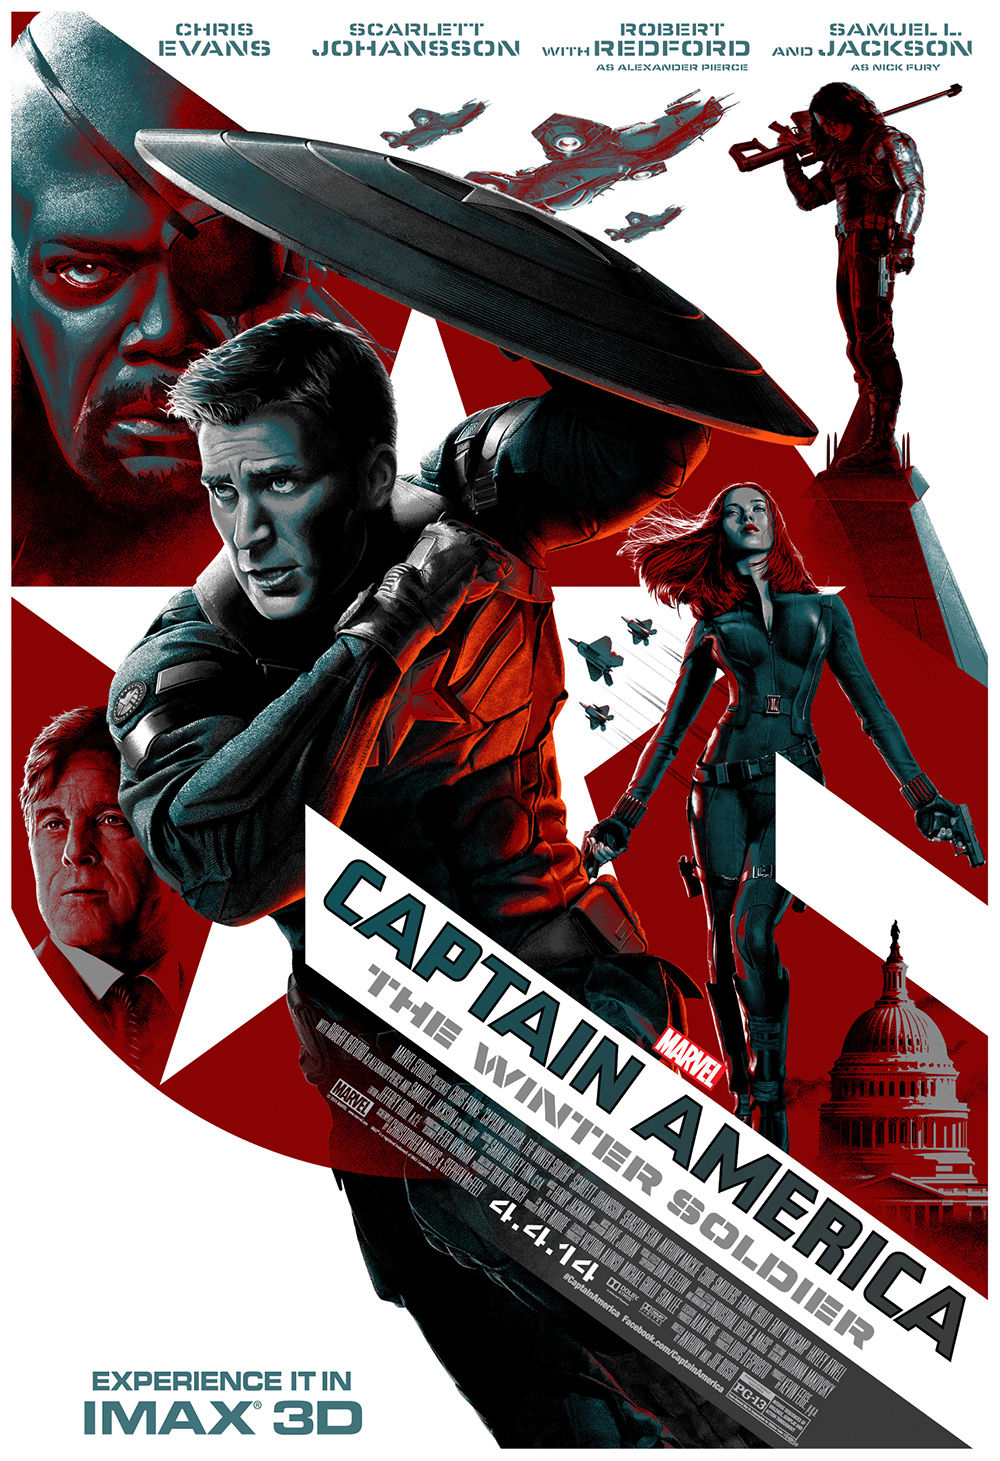 Captain America: The Winter Soldier IMAX 3D poster